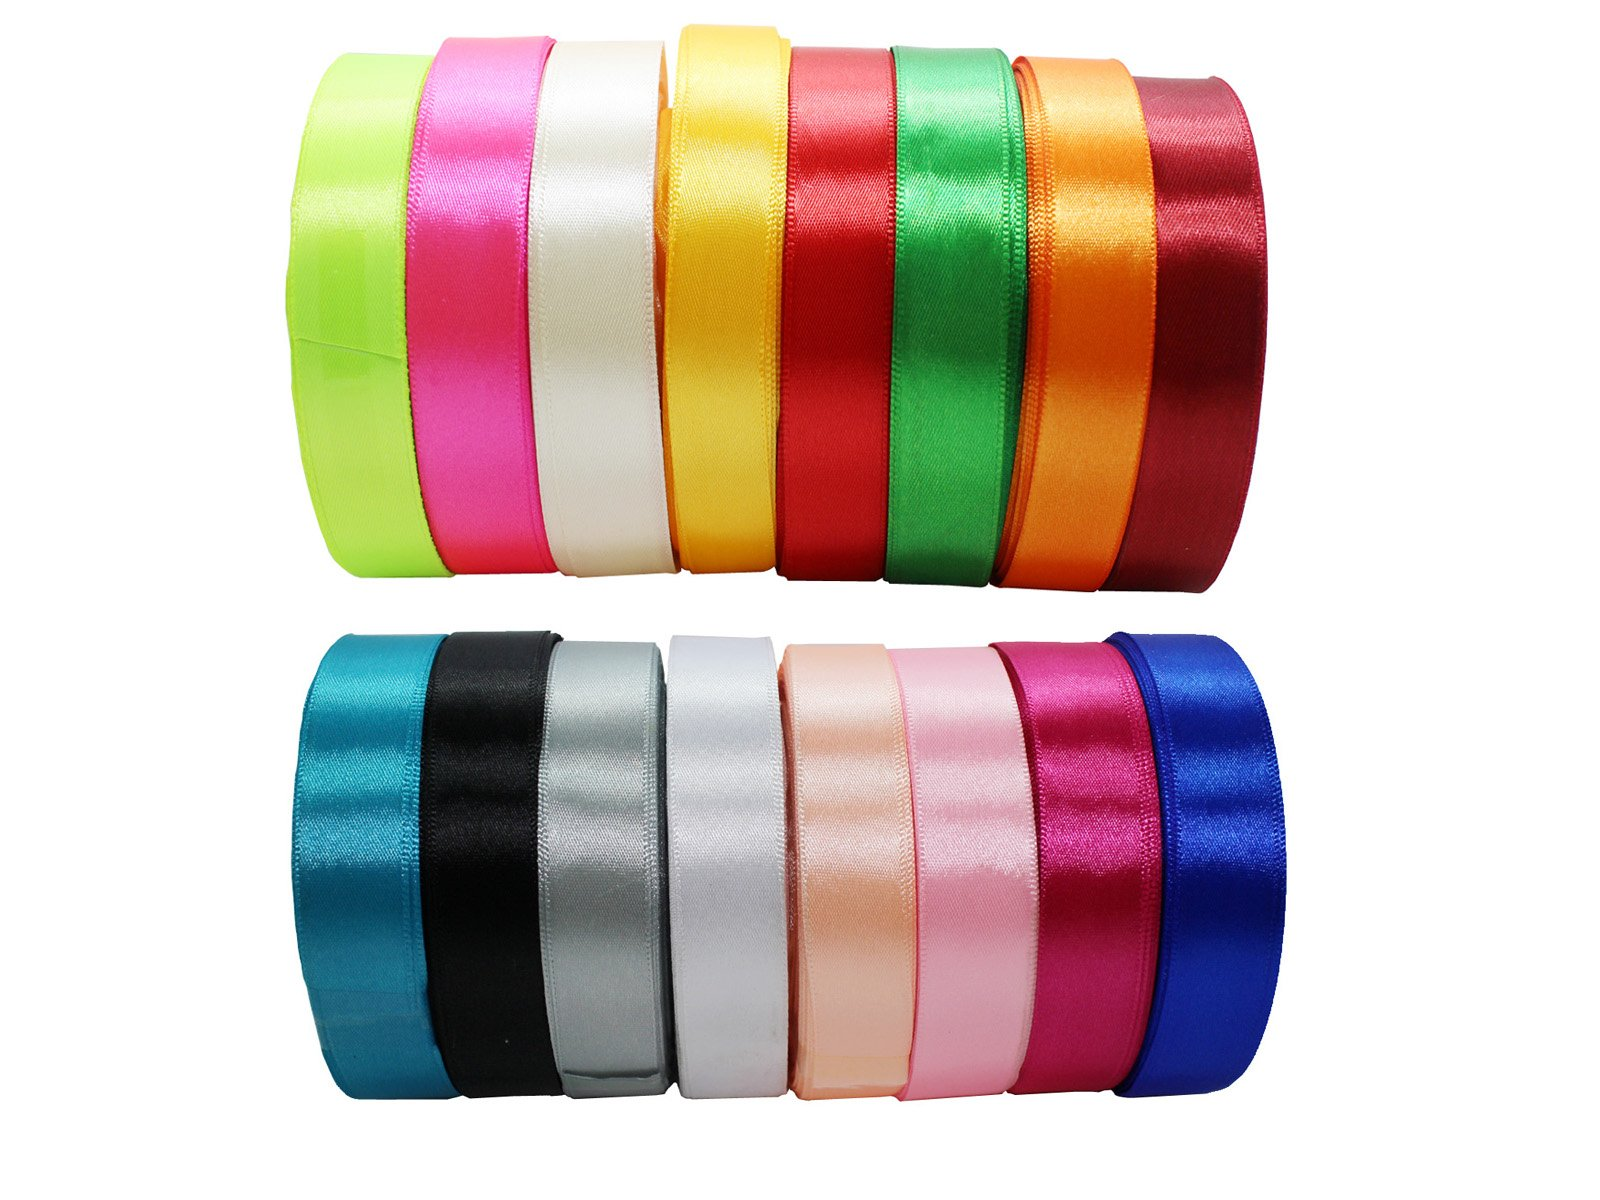 JESEP 16 Rolls 400 Yards Double Face Solid Satin Fabric Ribbon Multi-Color Packing for Gift Package Wrapping Hair Bow Clips Accessories, Crafting, Sewing, Wedding, Decorator, etc (1'' 20MM)